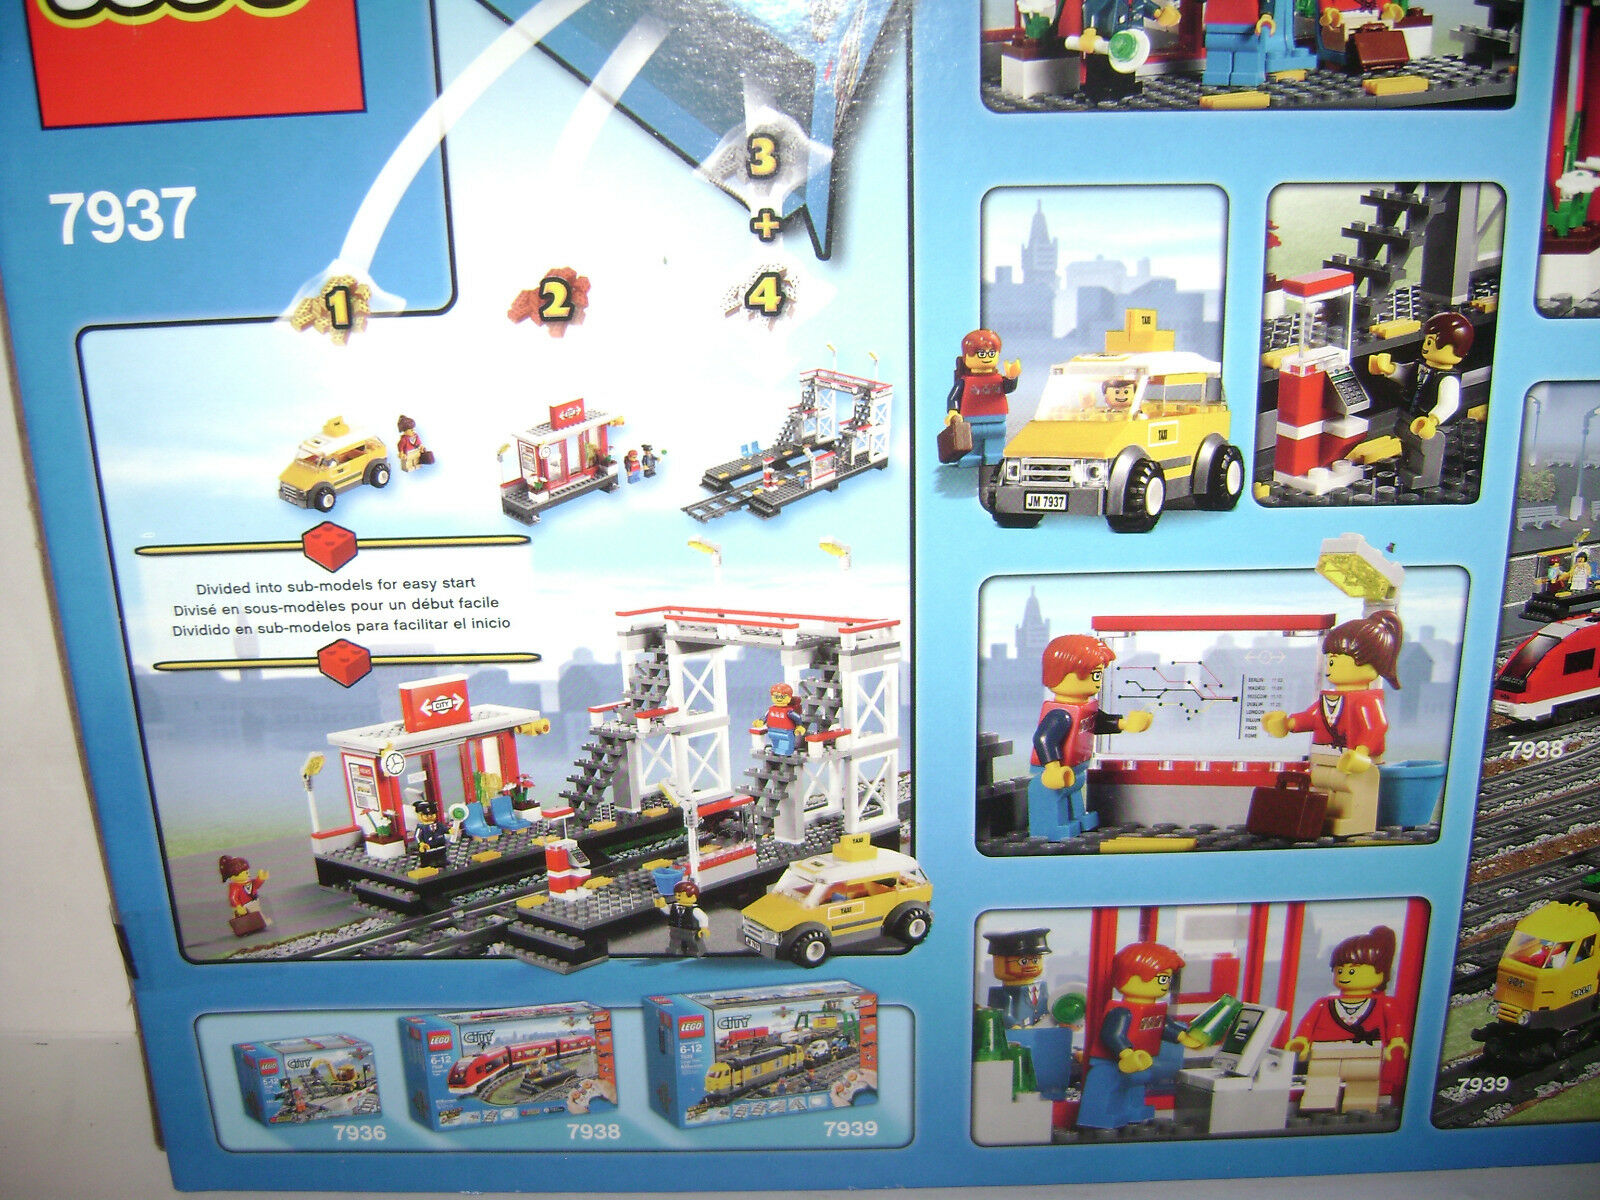 NEW 7937 Lego CITY Train Station LIMITED LIMITED LIMITED Building Toy SEALED BOX RETIRED RARE A 0939bf